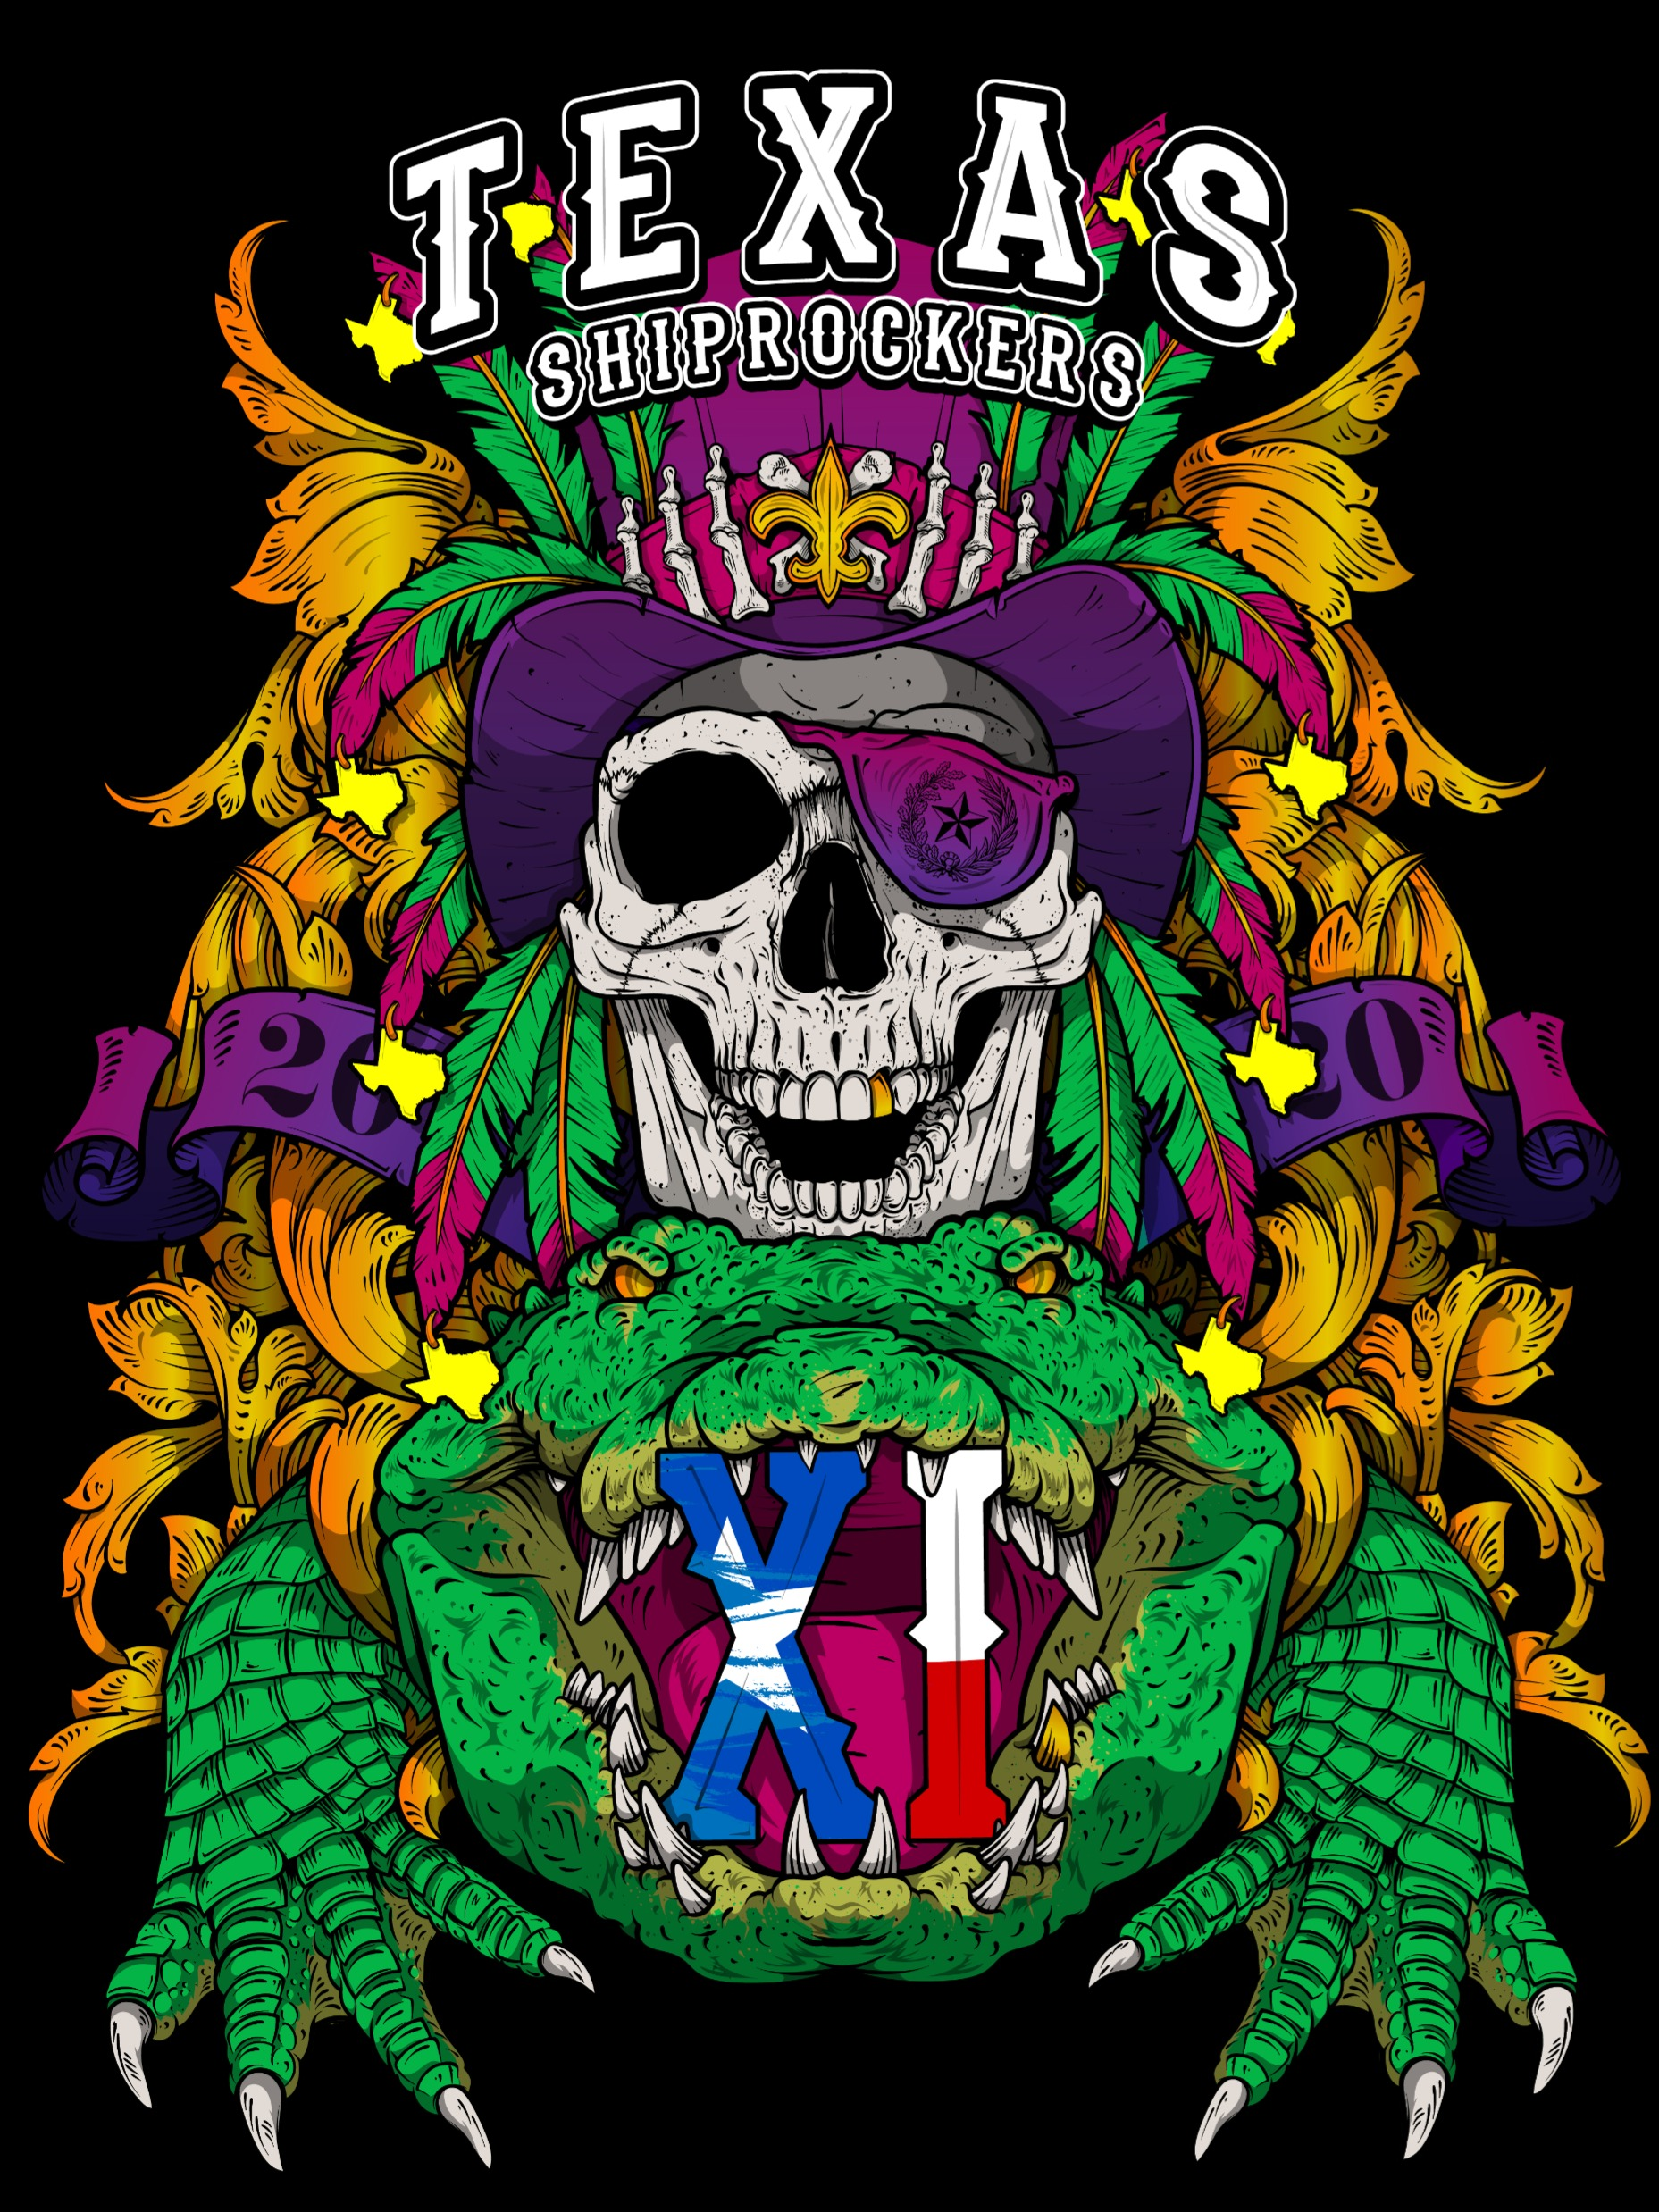 TEXAS SHIPROCKED 2020 NOLA FINAL-03_edit